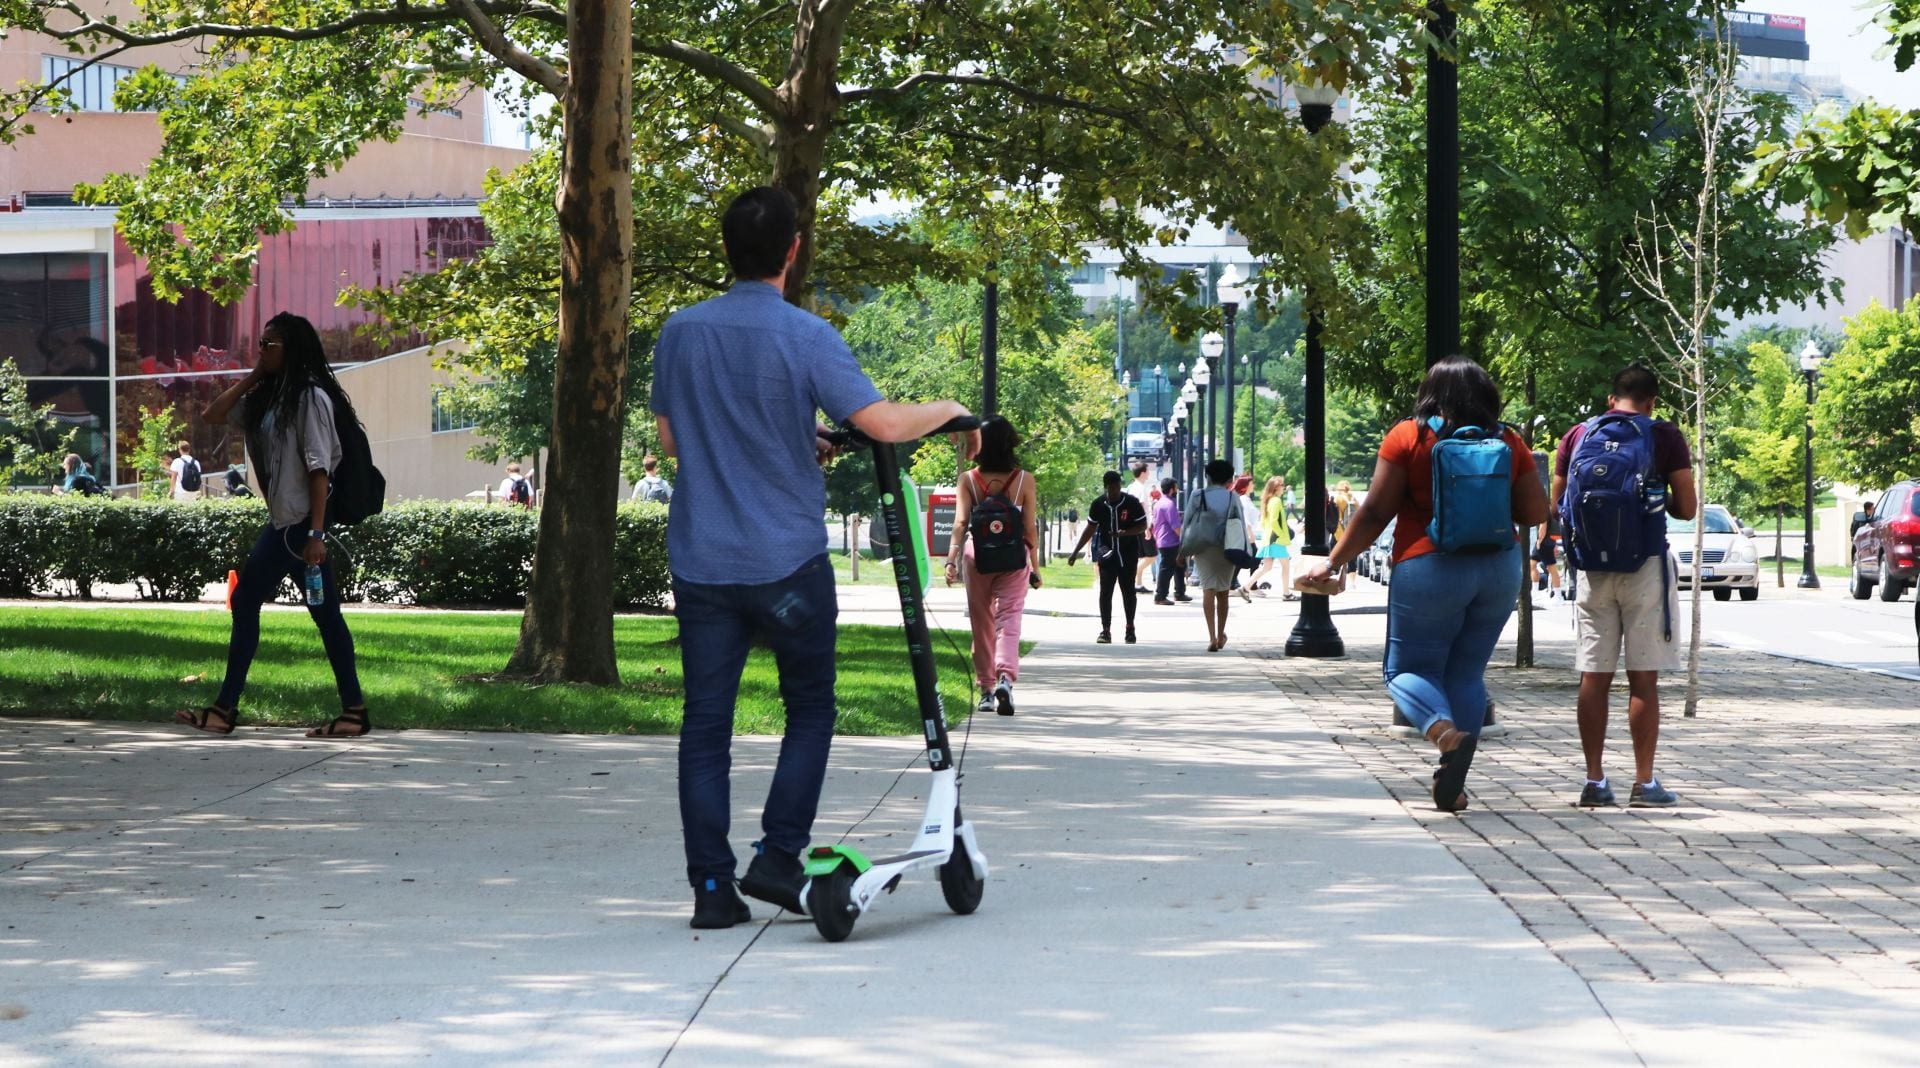 Regulations on scooters are decided in Columbus